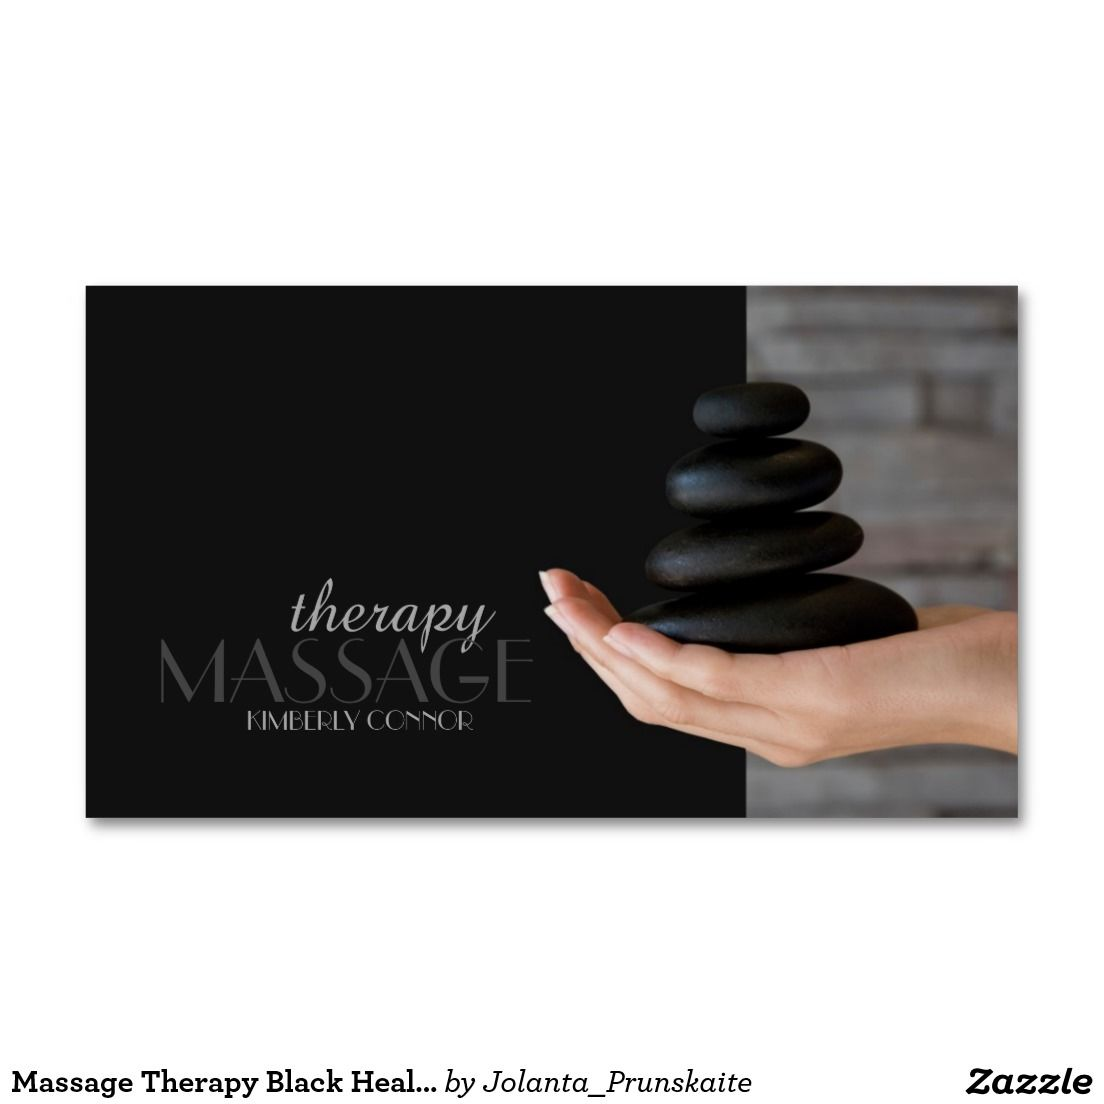 Massage Therapy Black Healing Stones Business Card | Business cards ...